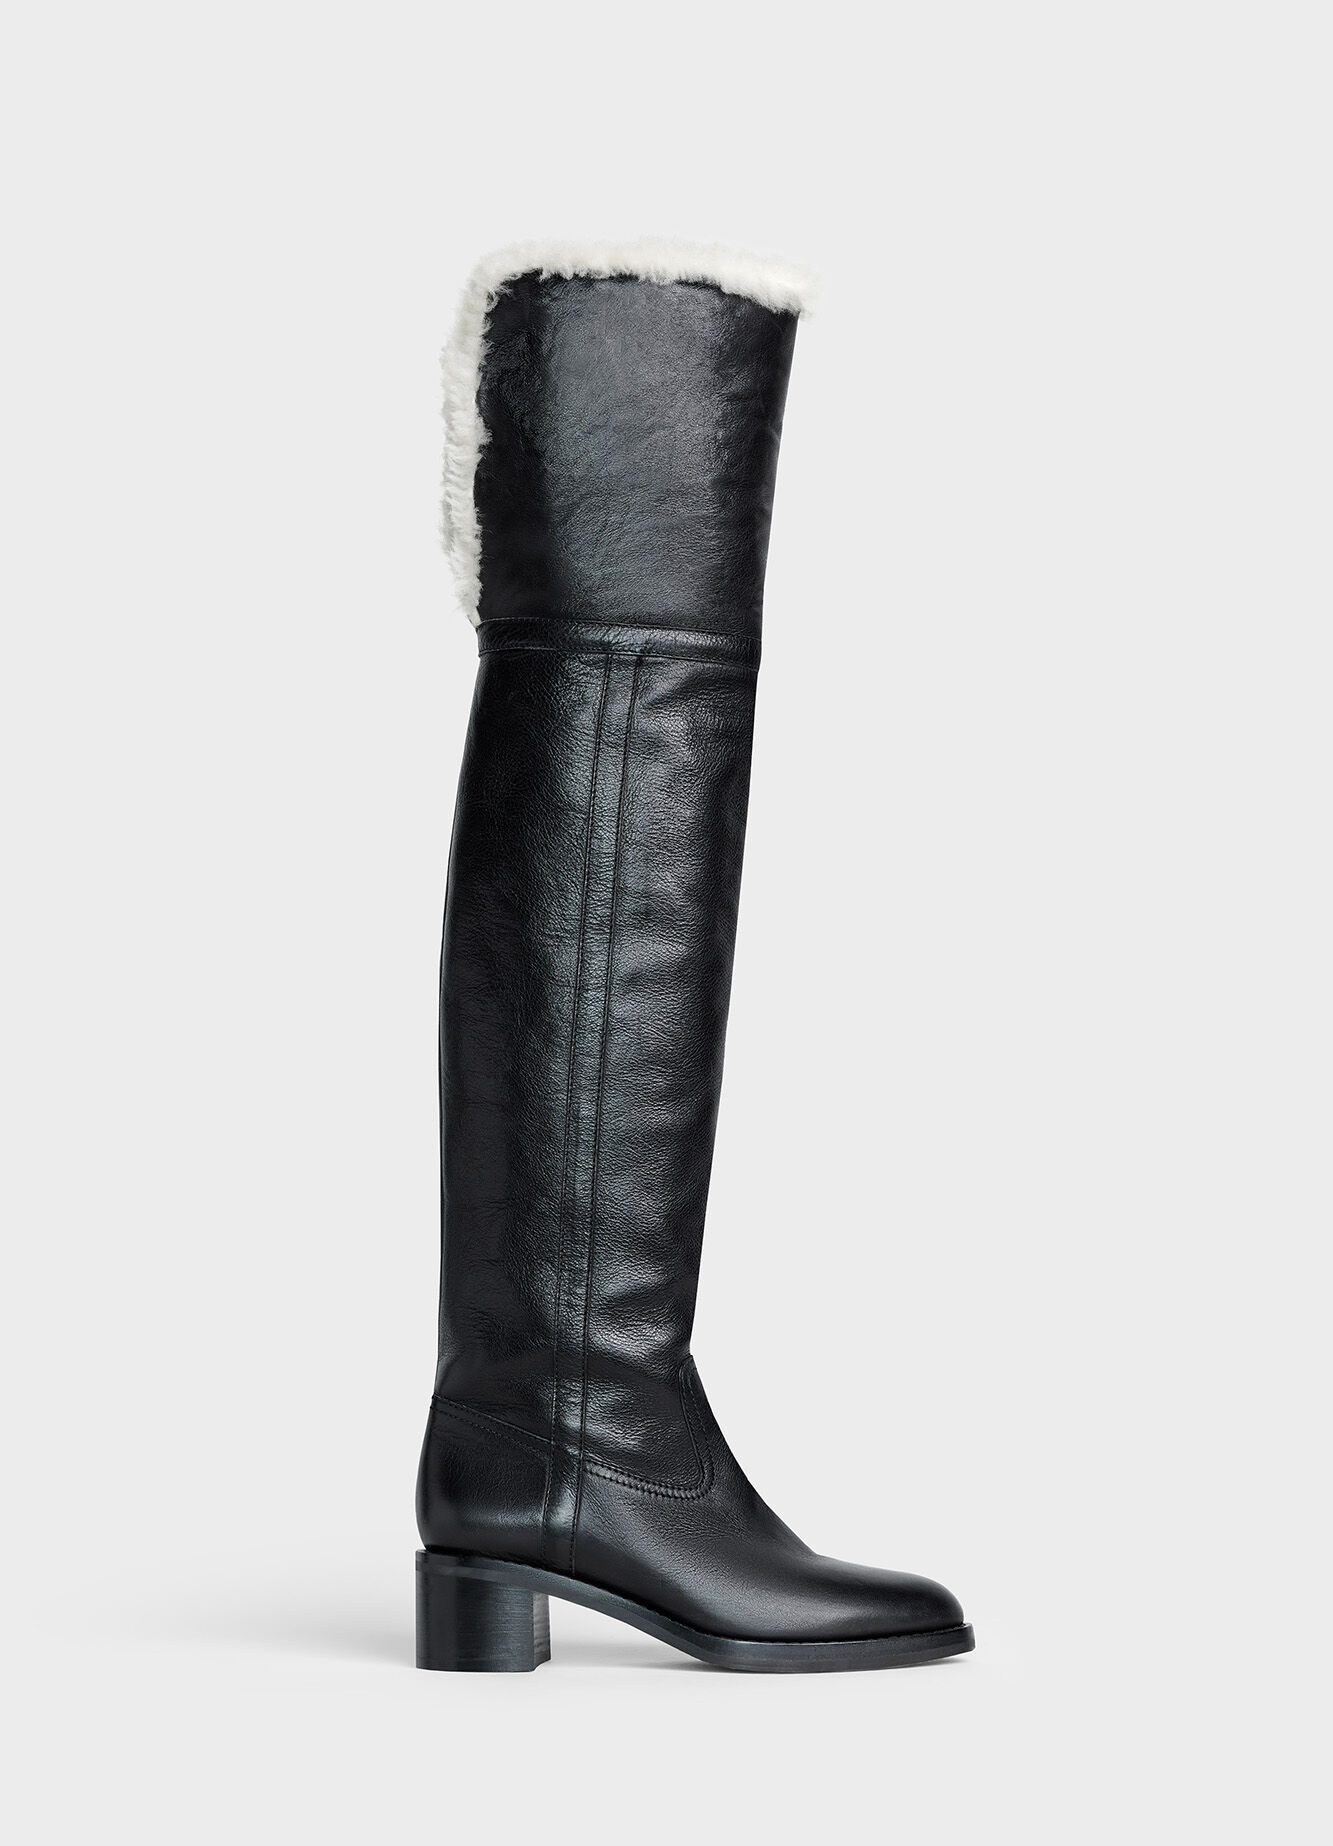 CELINE FOLCO OVER THE KNEE BOOT IN CALFSKIN